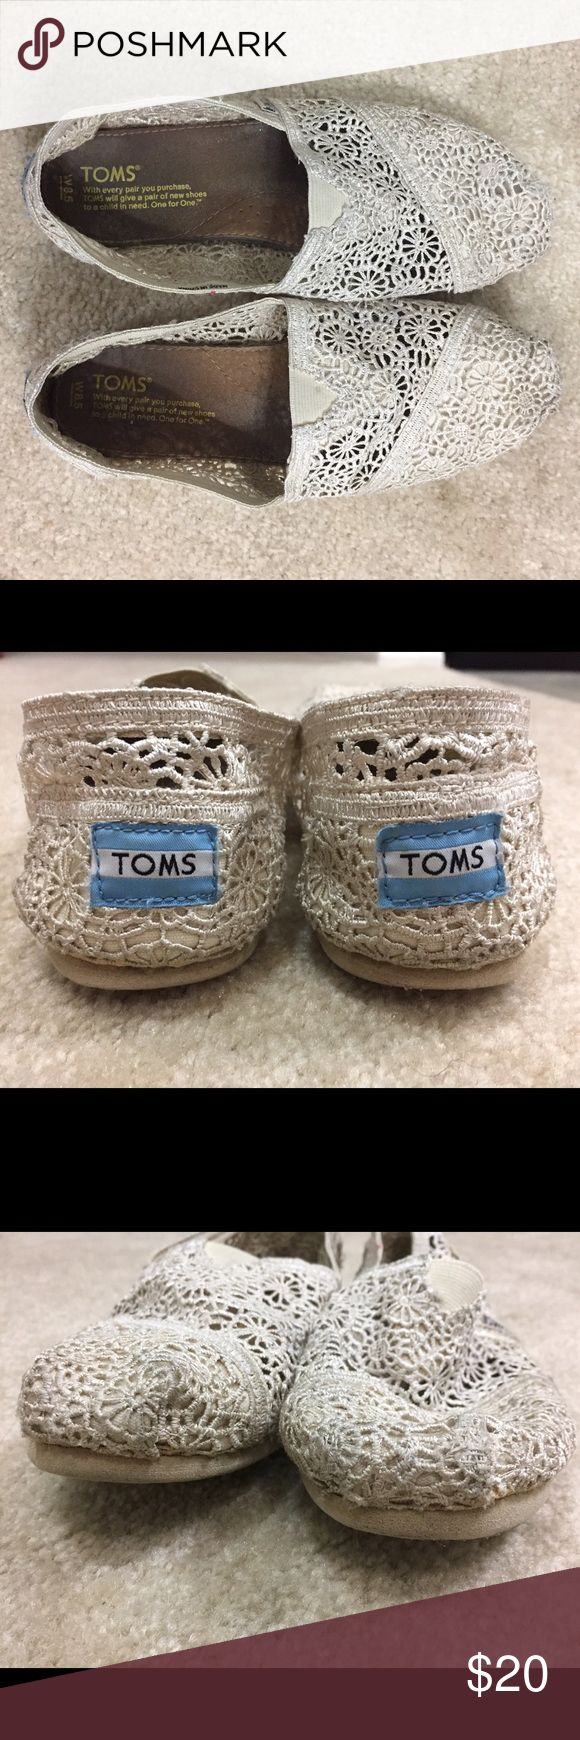 Crochet lace Toms Off White or Cream Toms. Lace Crochet. Size 8.5 TOMS Shoes Flats & Loafers